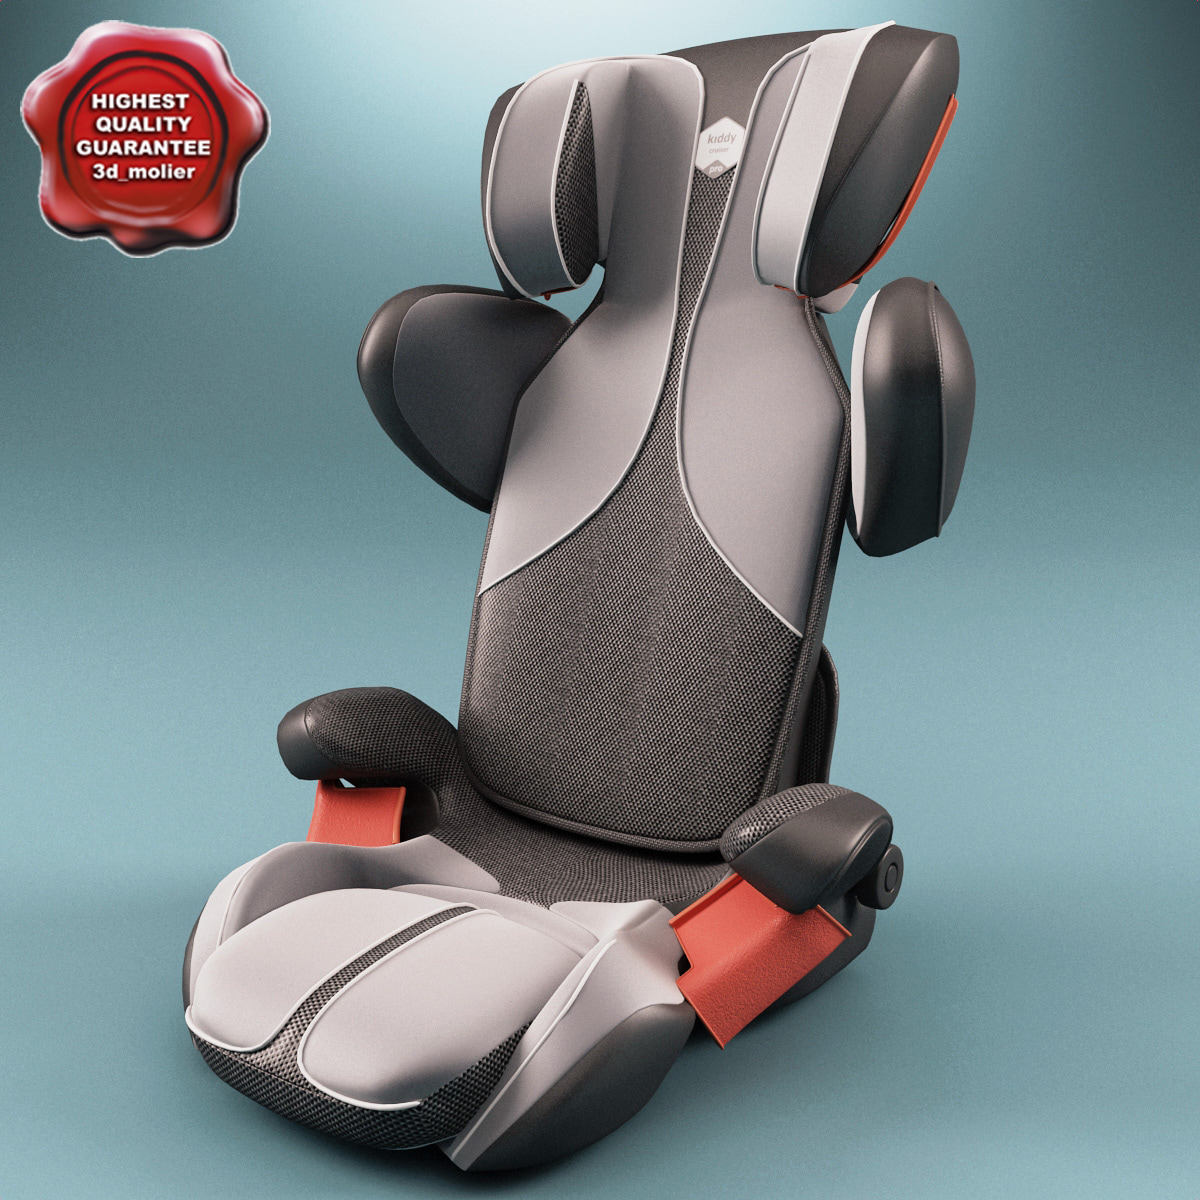 Kiddy_Car_Seat_Cruiser_Pro_00.jpg